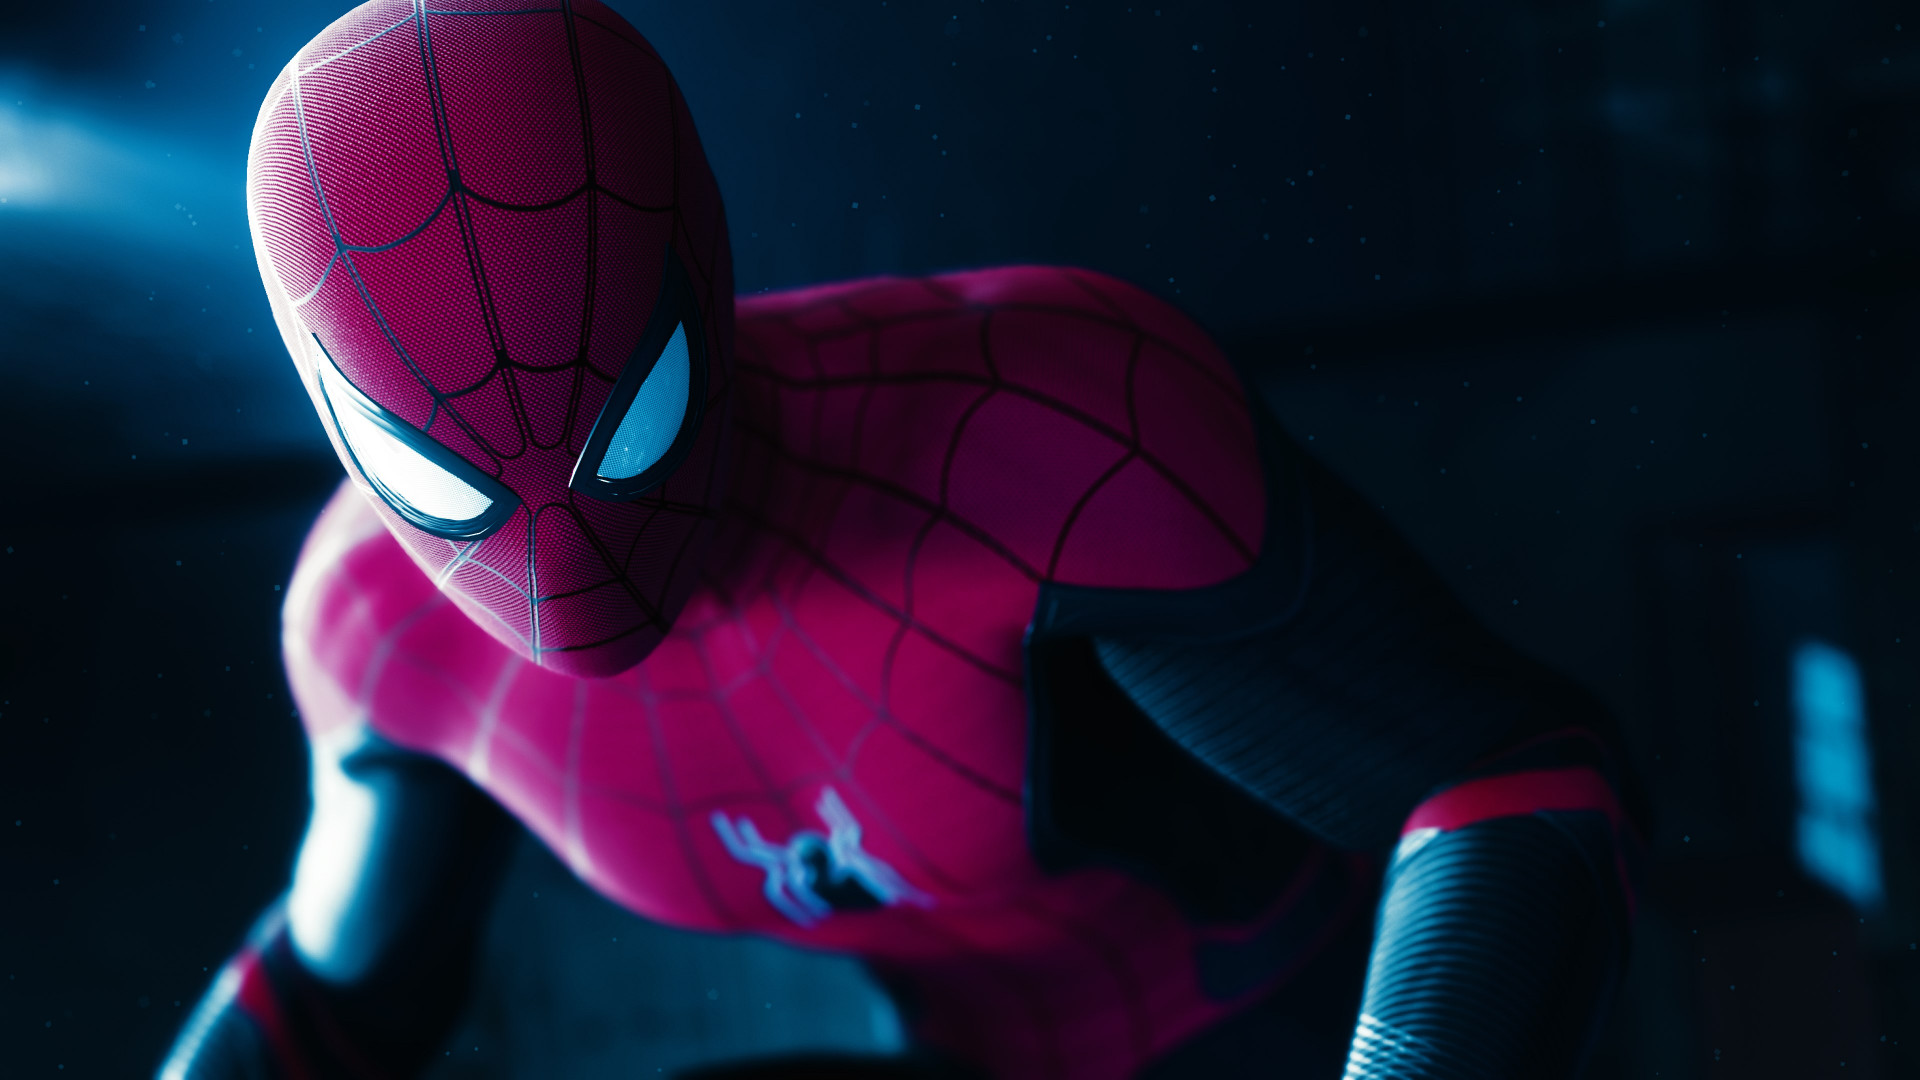 Download Wallpaper The Game Spider Man Far From Home 1920x1080